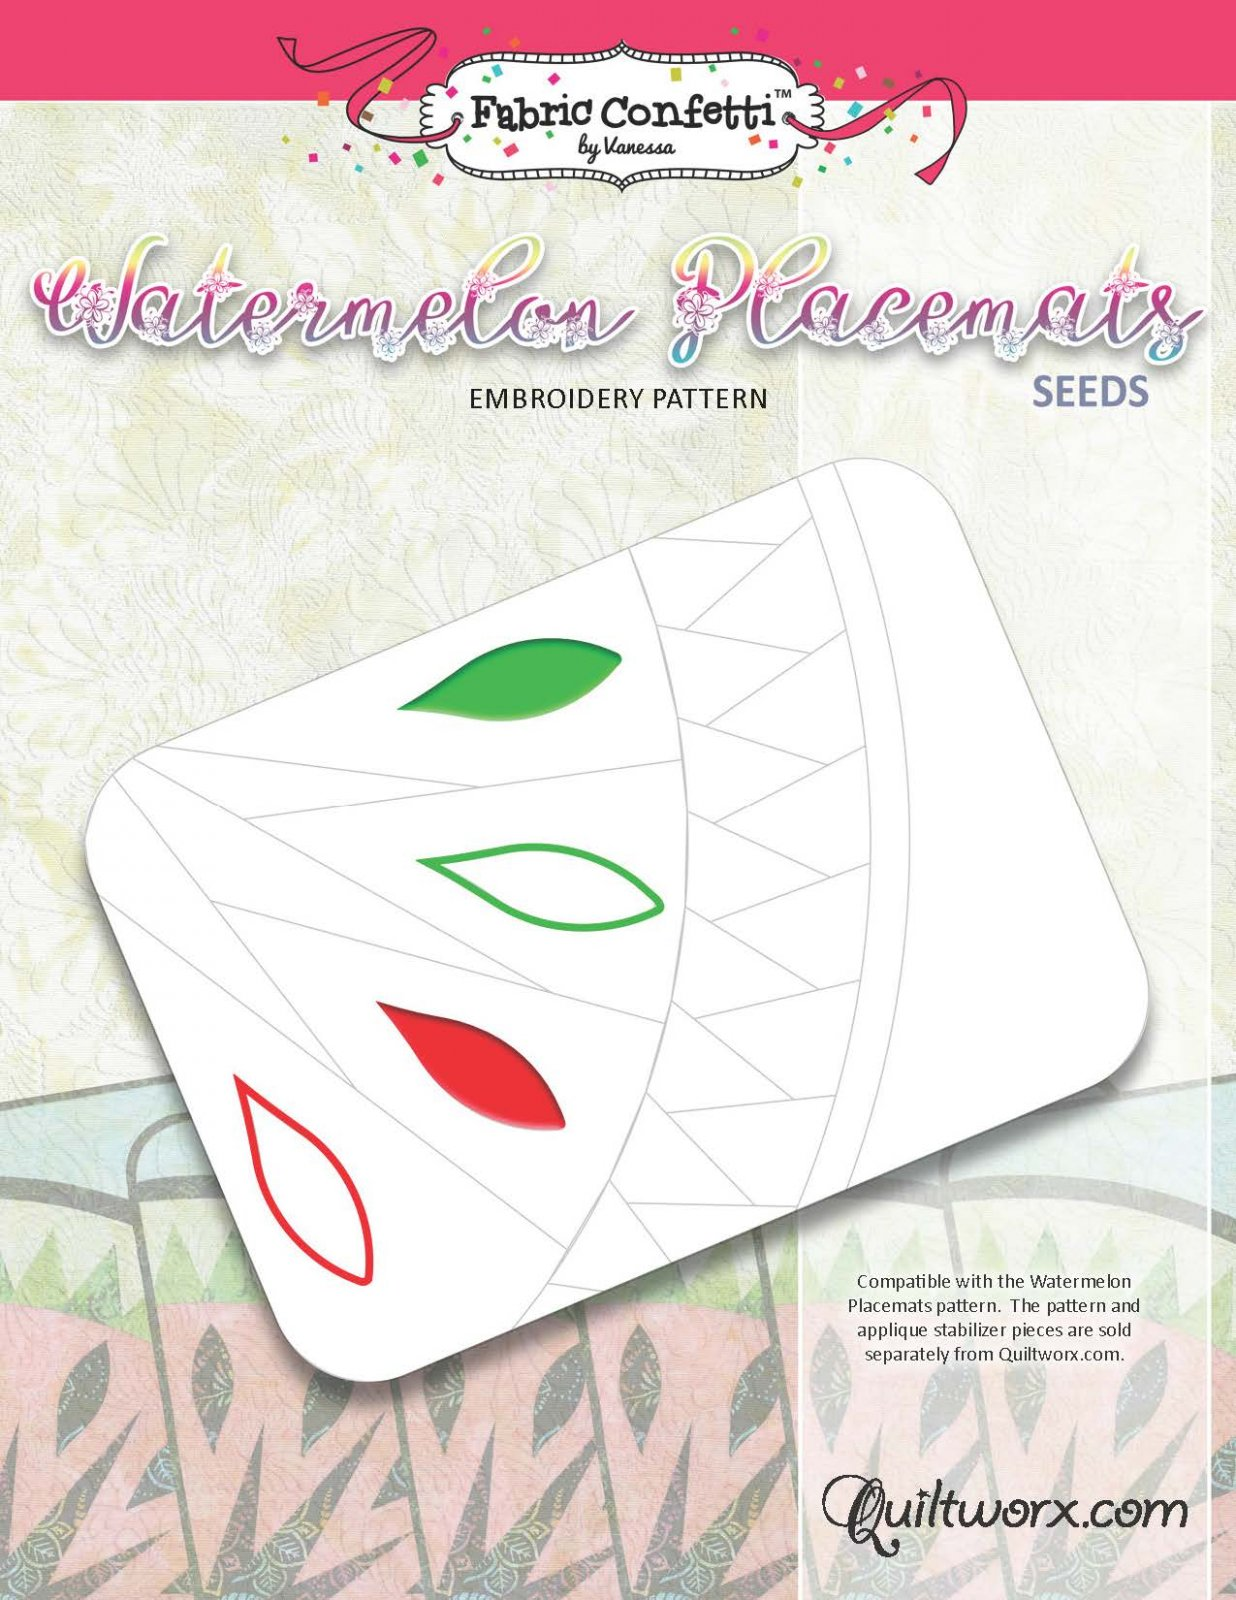 Watermelon Placemats Seeds